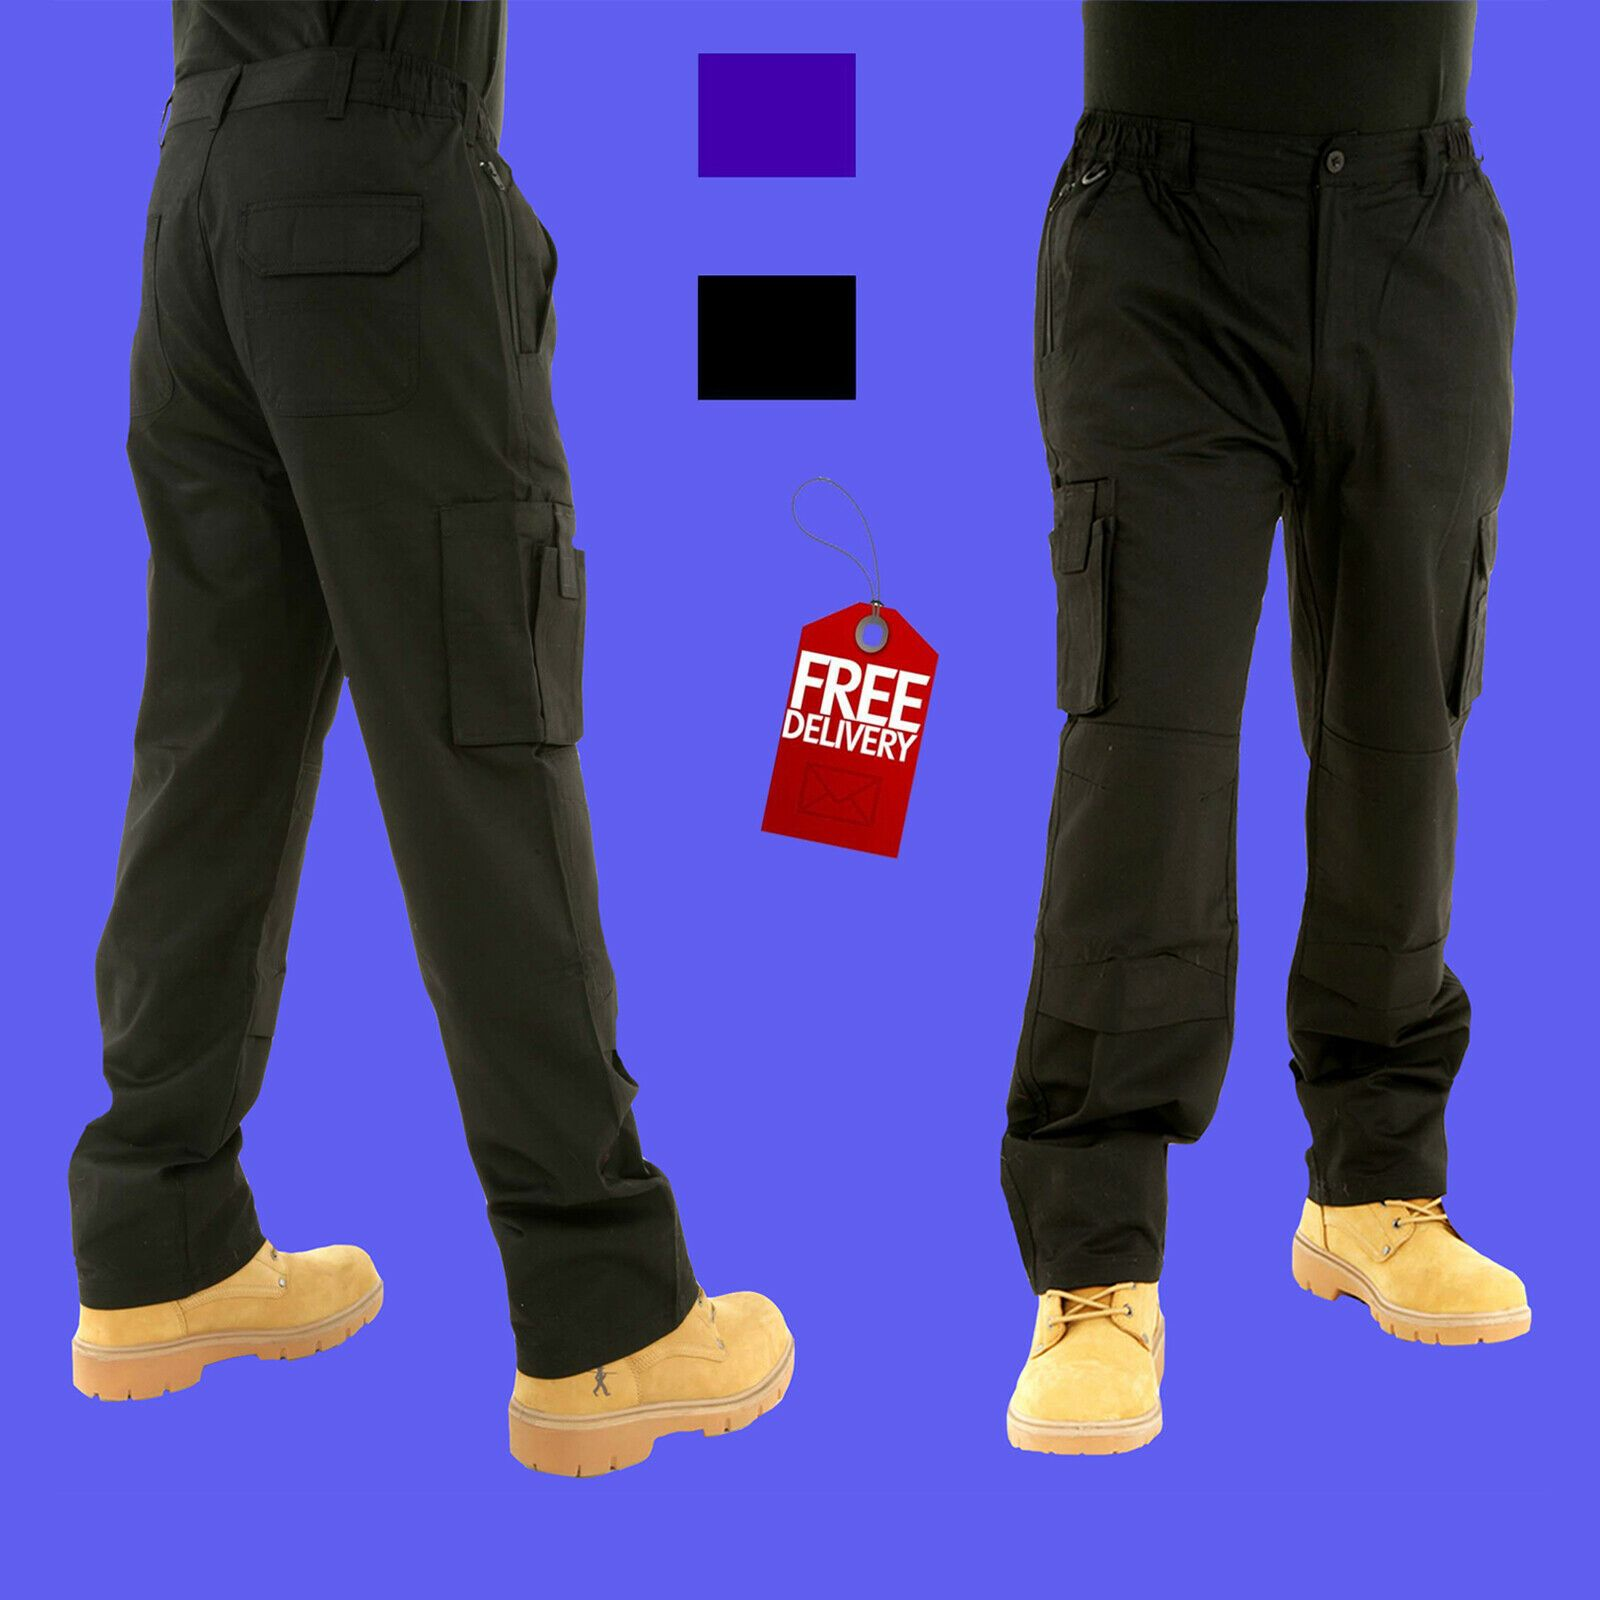 Mens Combat Cargo Work Trousers Size 30 To 54 With Knee Pad Pockets By Bks Ebay Work Trousers Knee Pads Knee